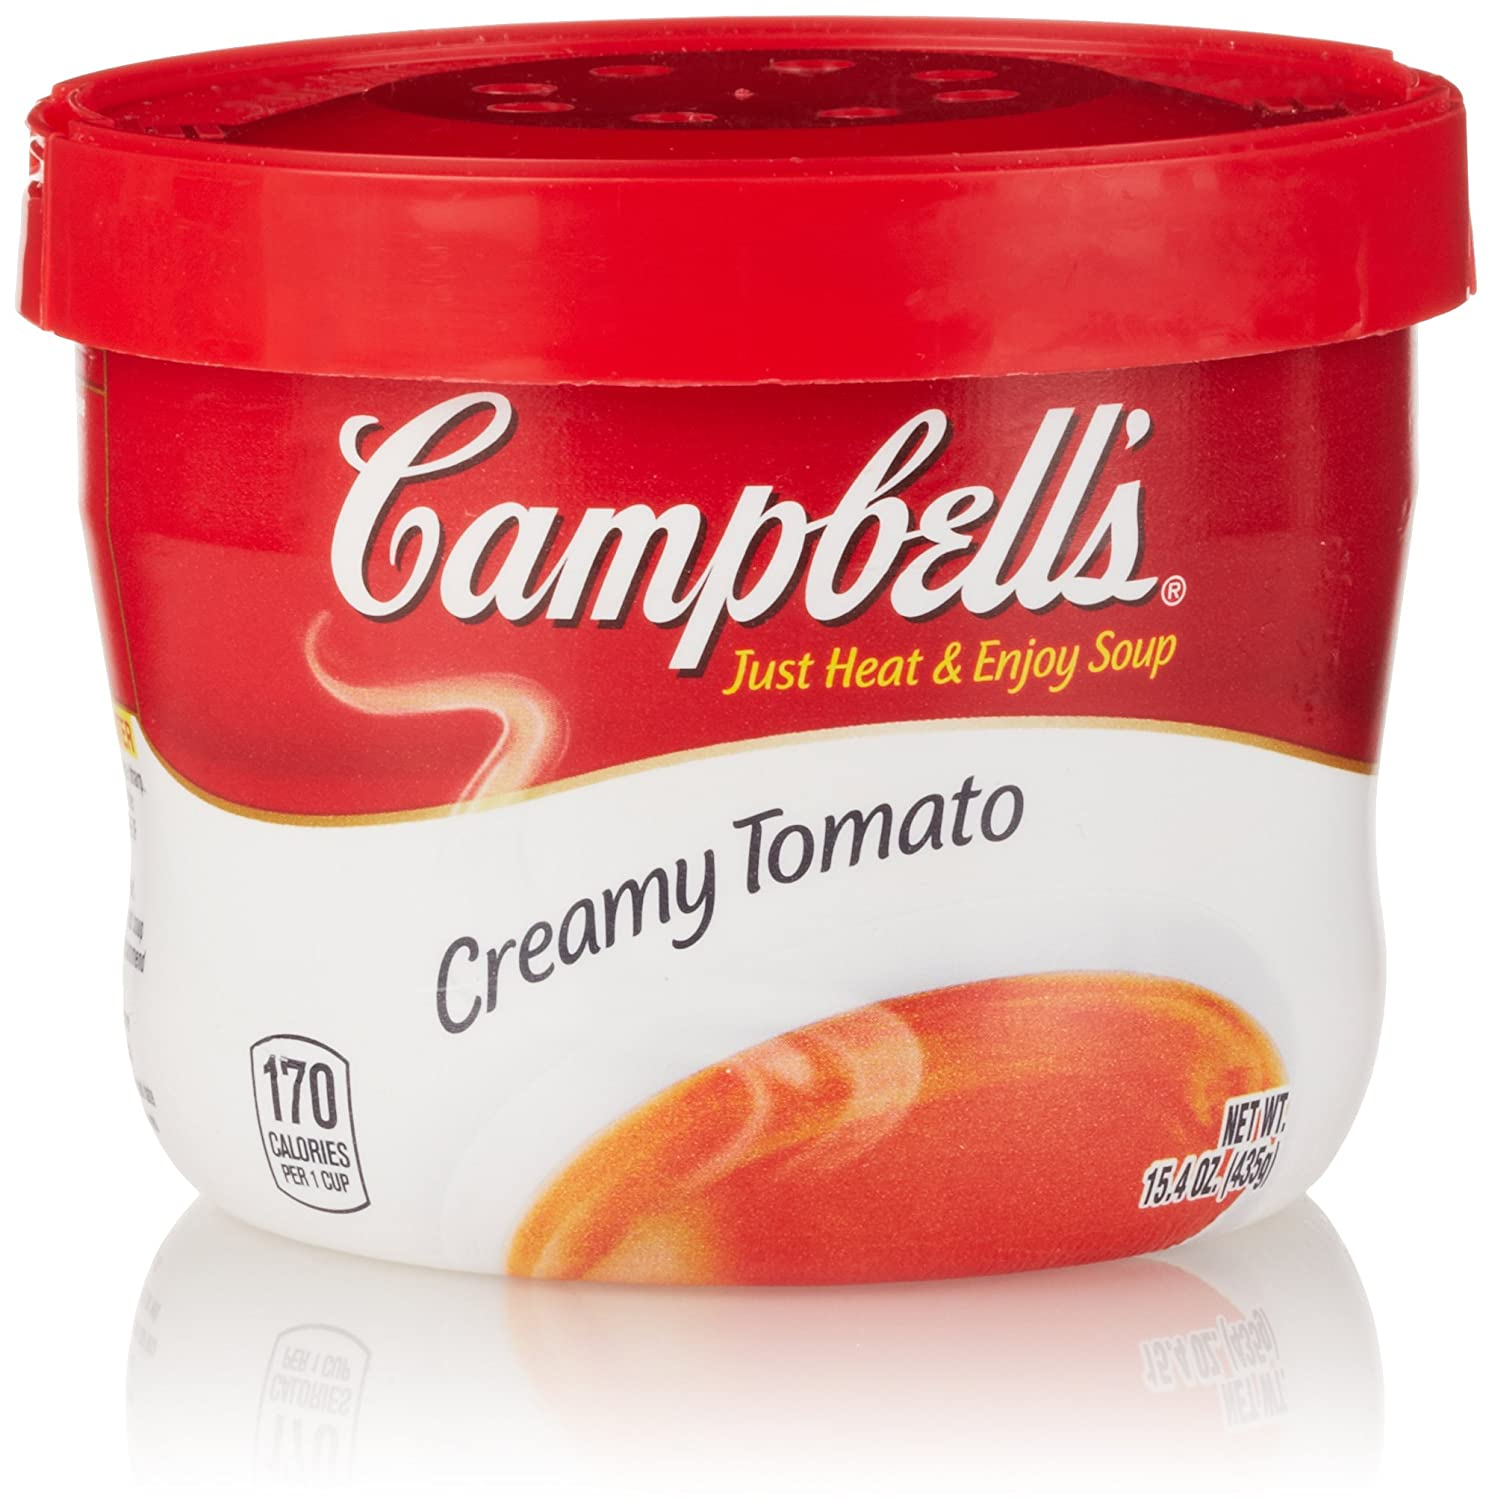 Instant Tomato Soup Campbell's Tomato Soup Bowl